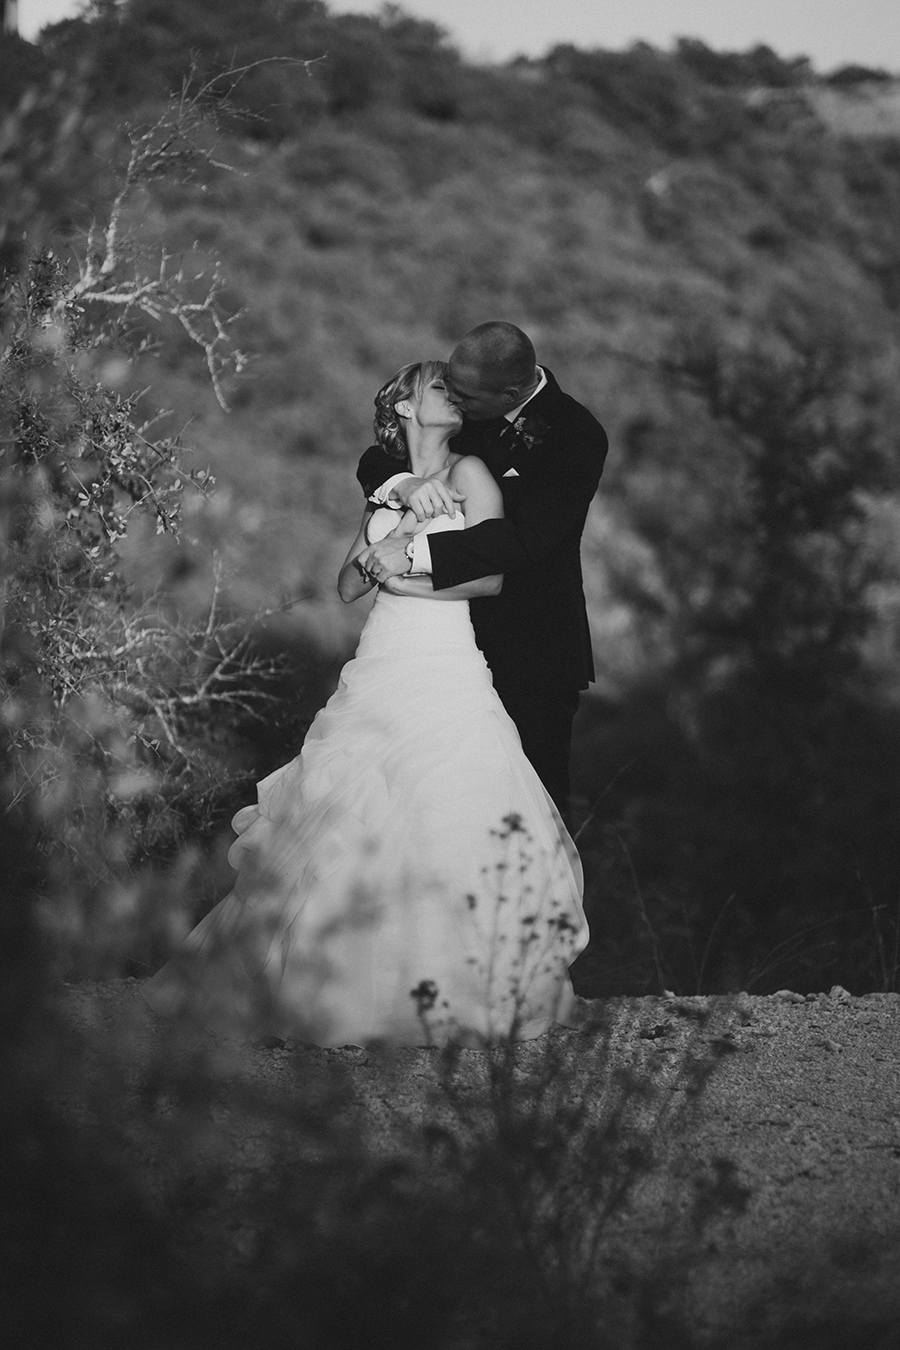 Villa-antonia-wedding-austin-texas-26